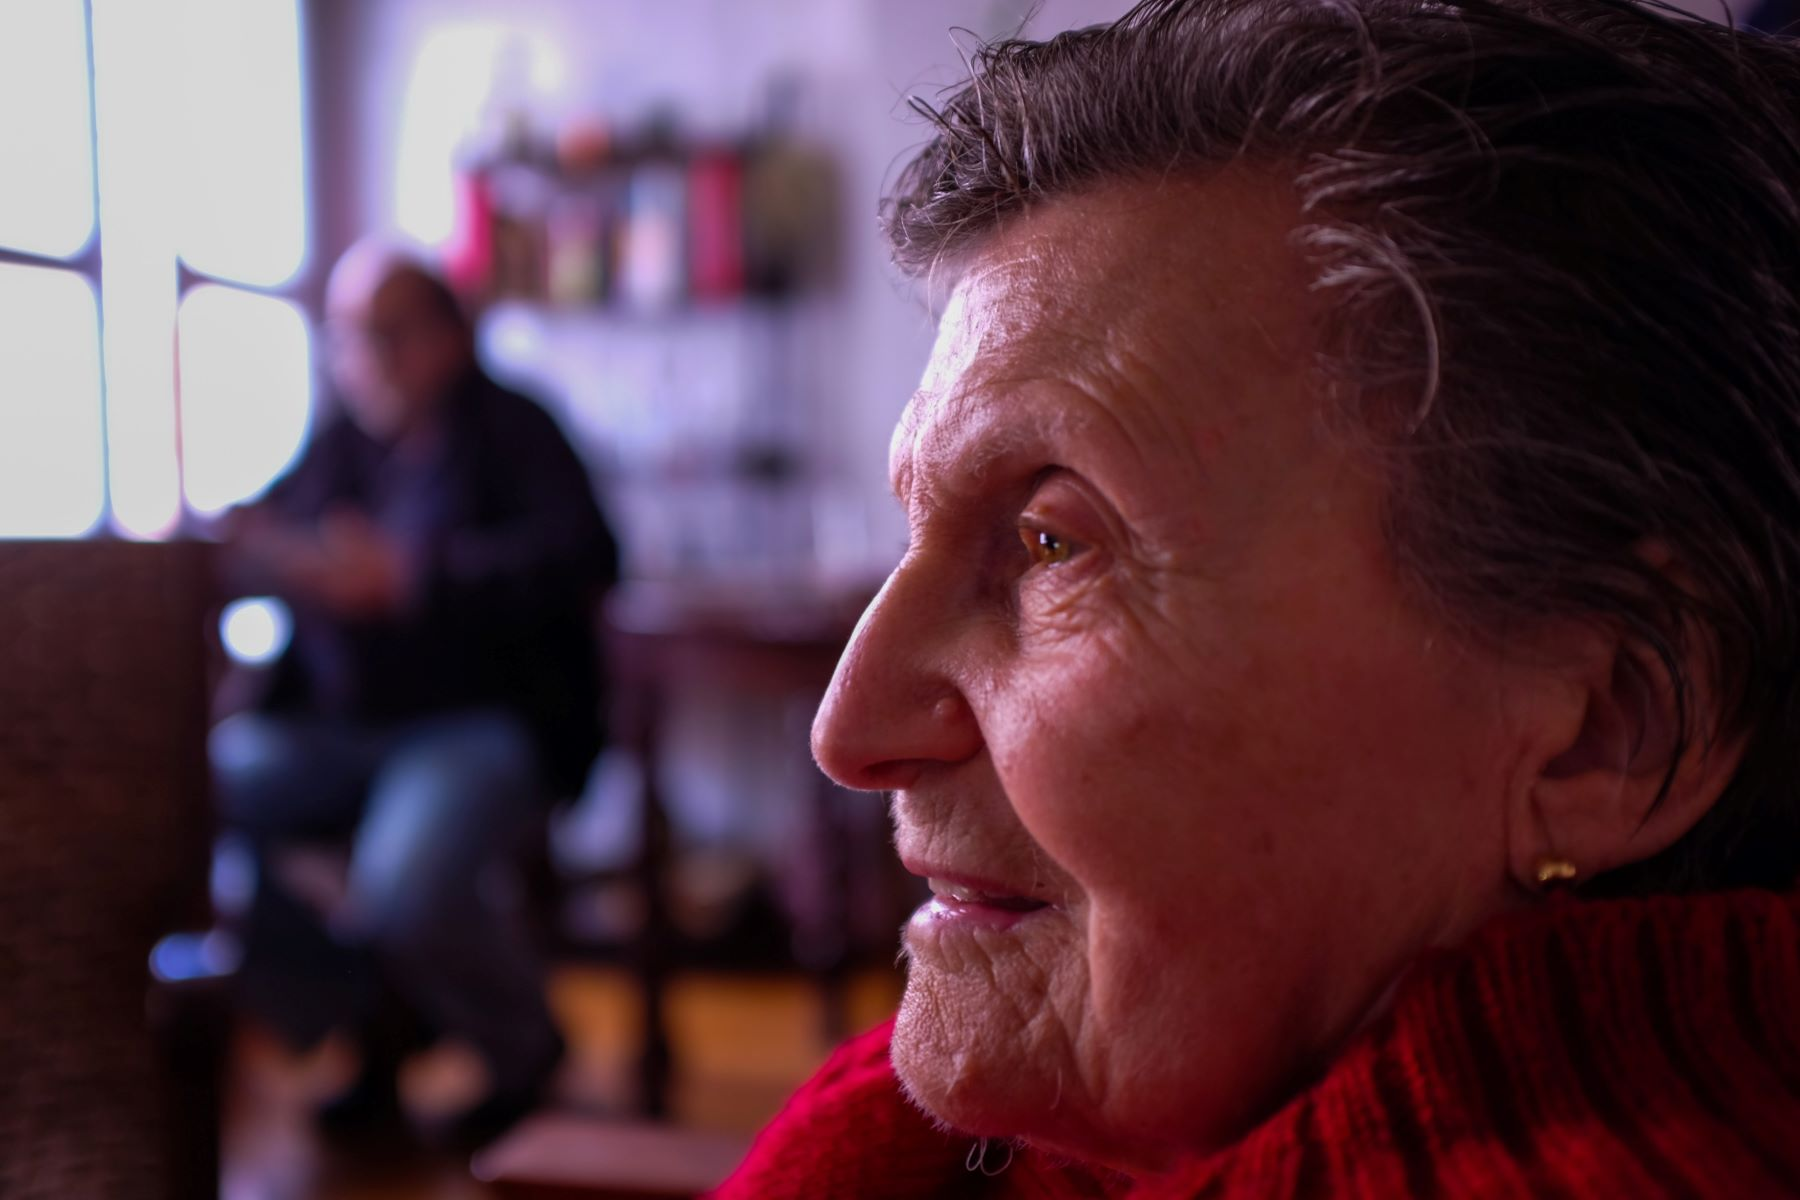 PTSD treatment for older people